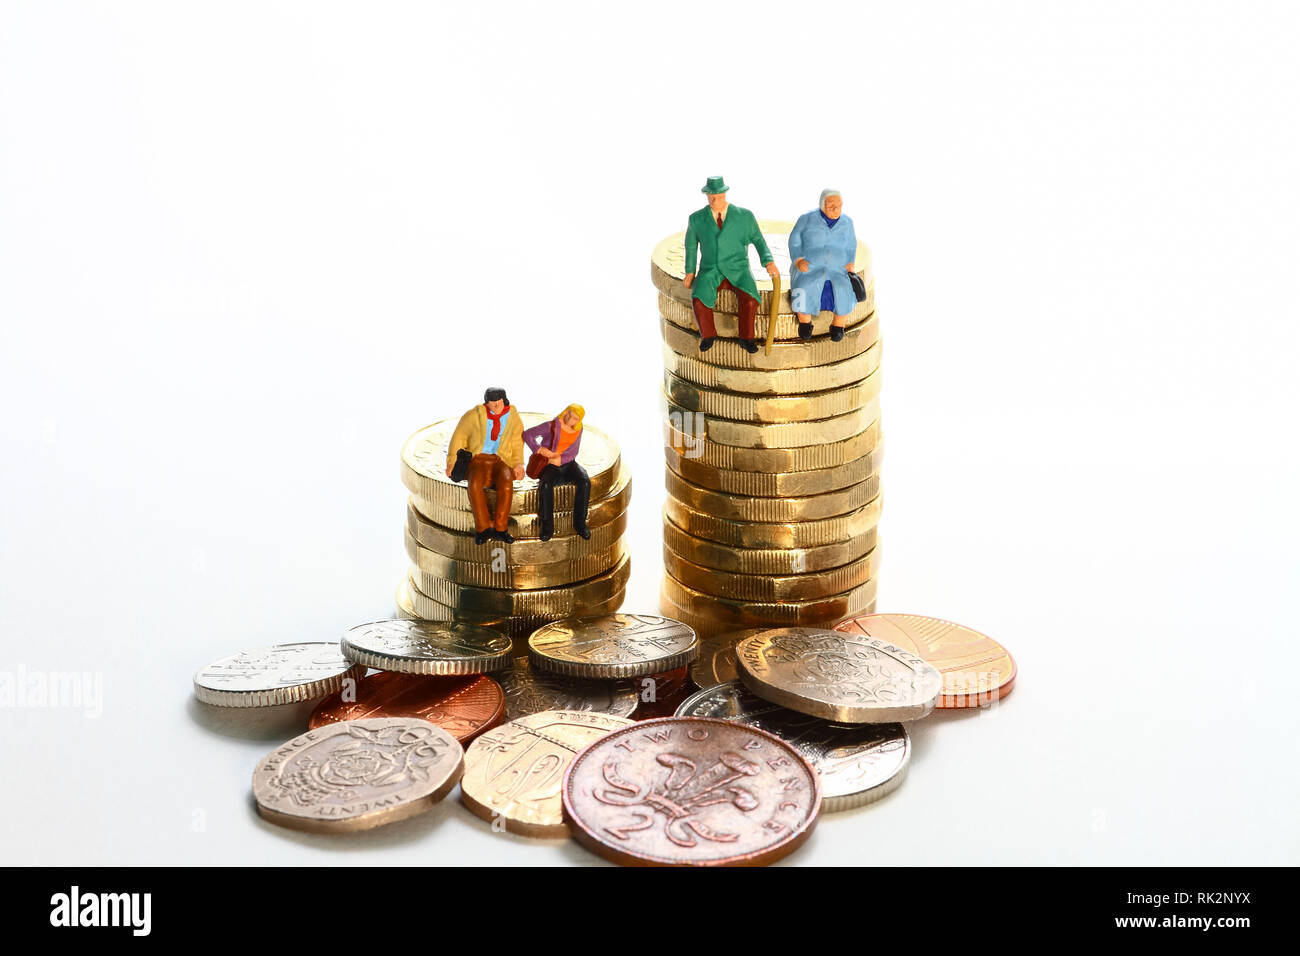 Conceptual diorama image of a miniture figure retired couple and young couple sat on a stack of pound coins - Stock Image